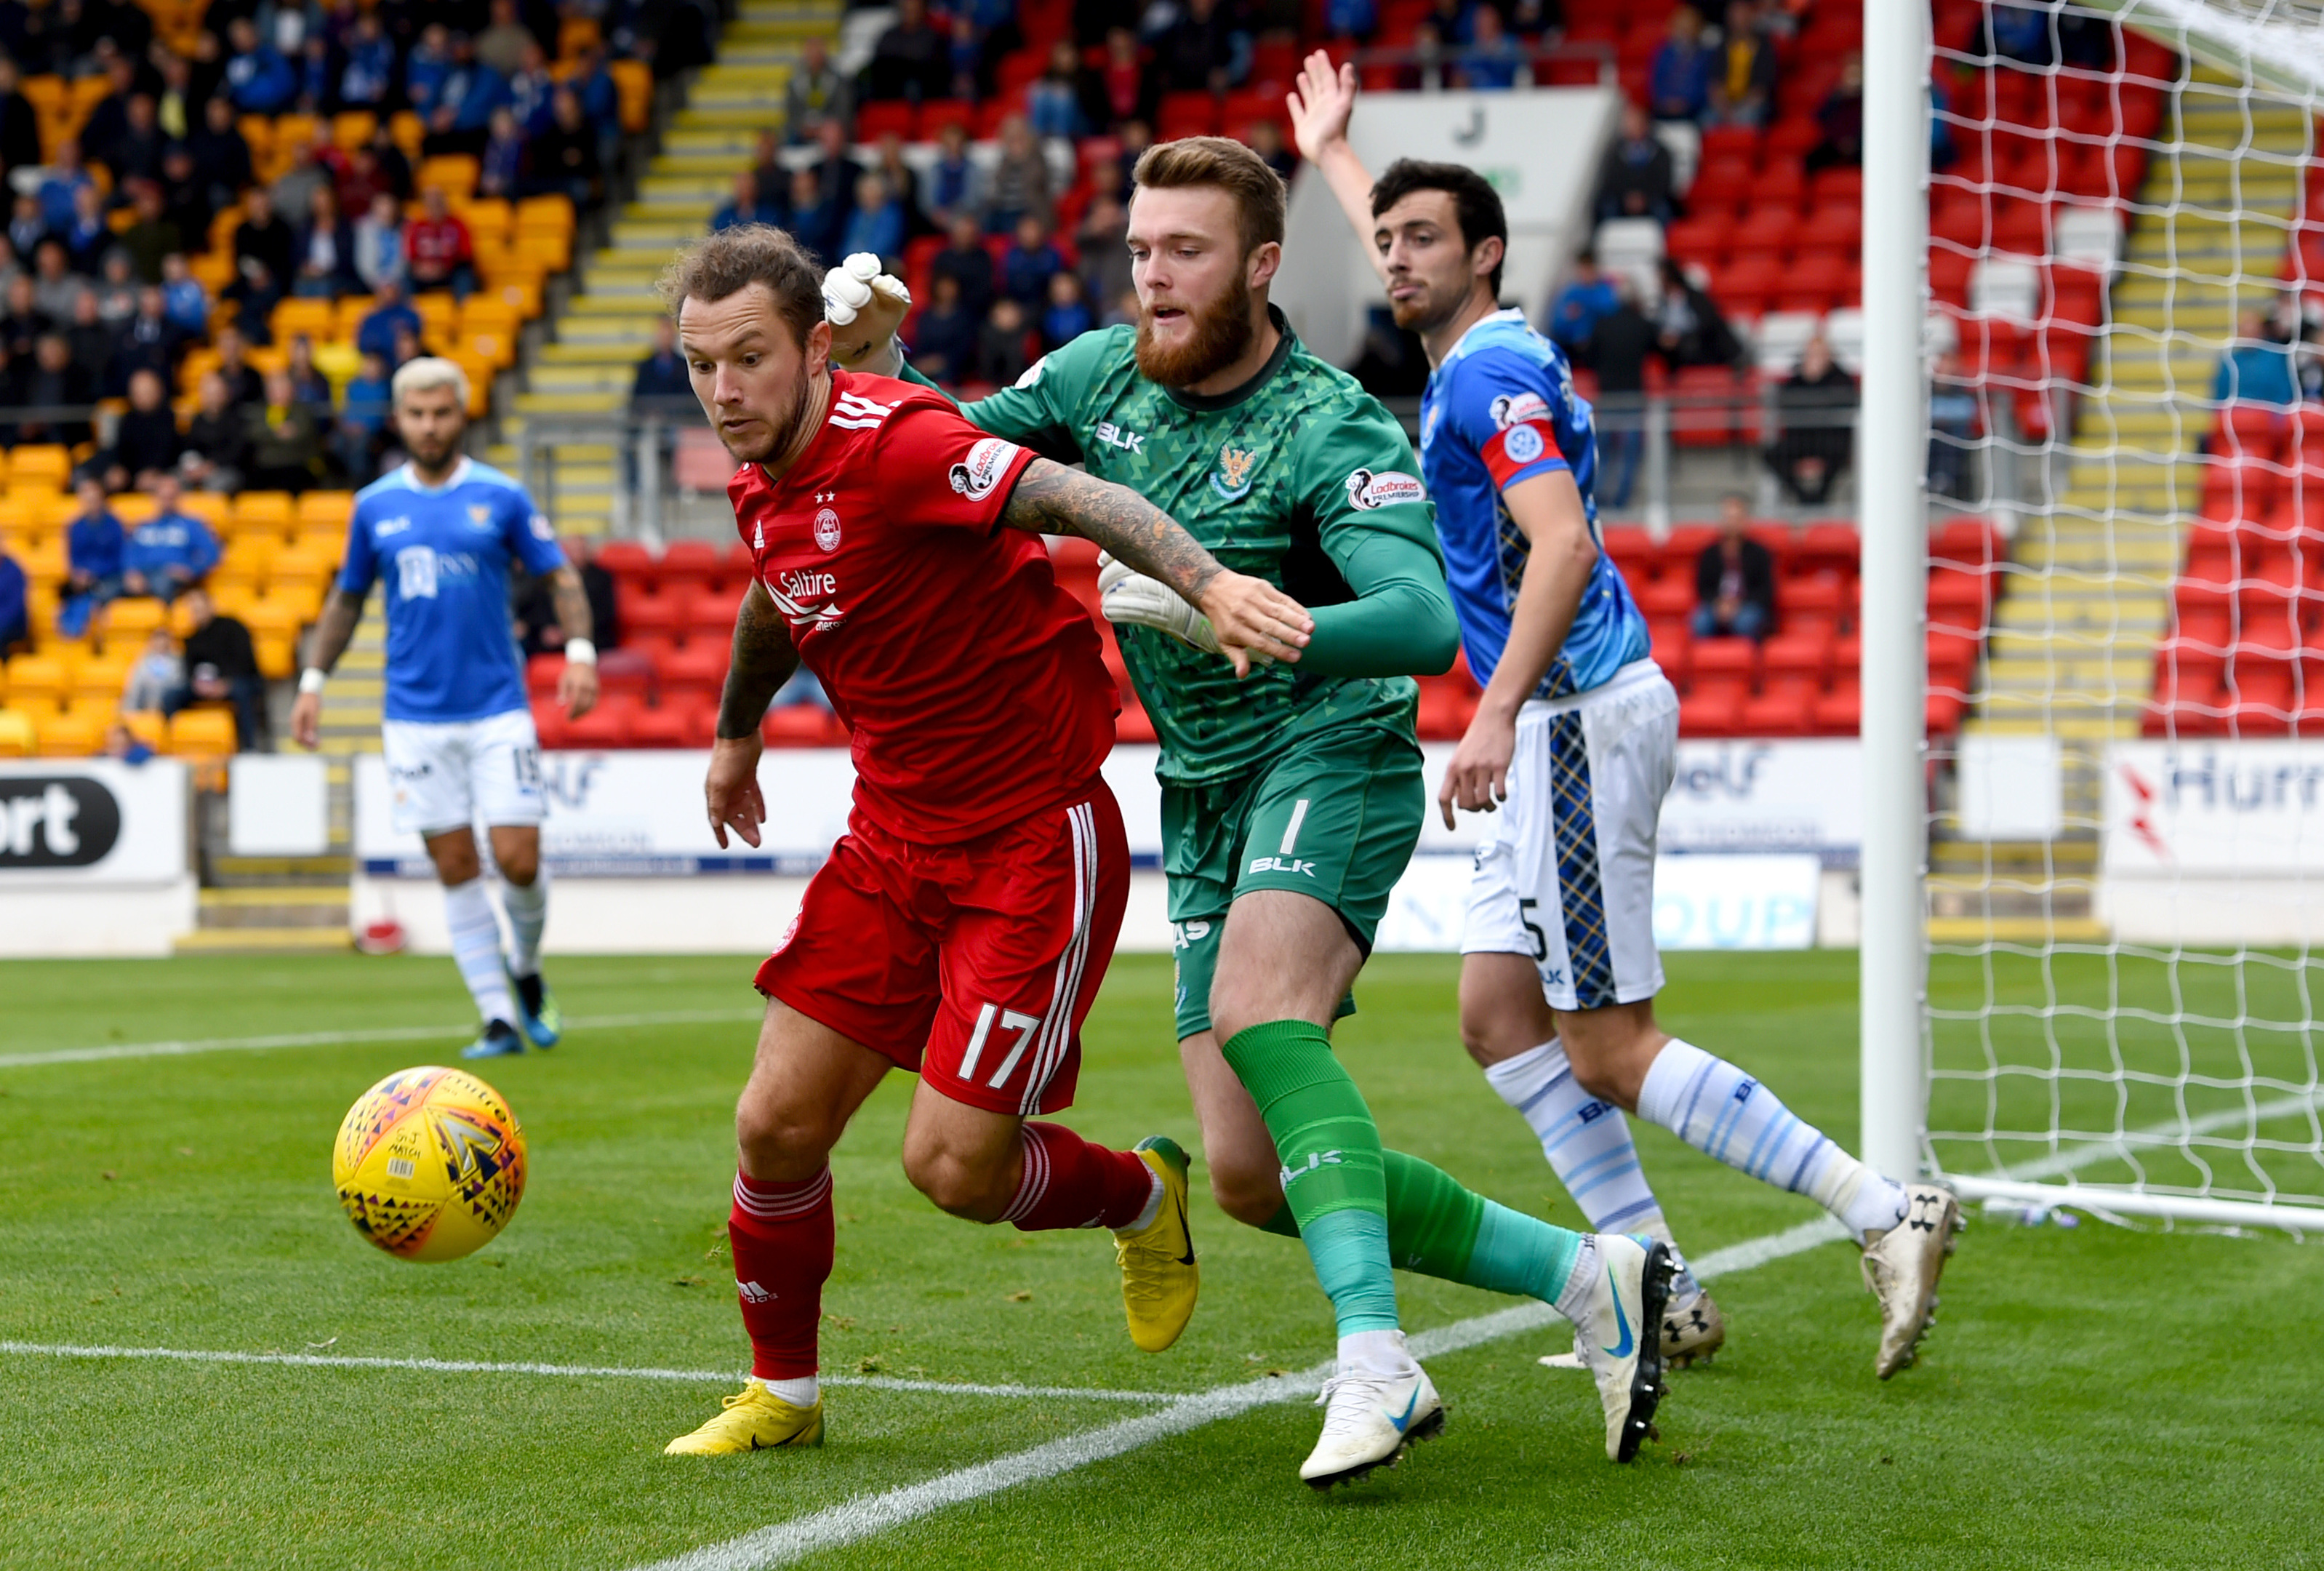 Aberdeens Stevie May in action against St Johnstone's Zander Clark.